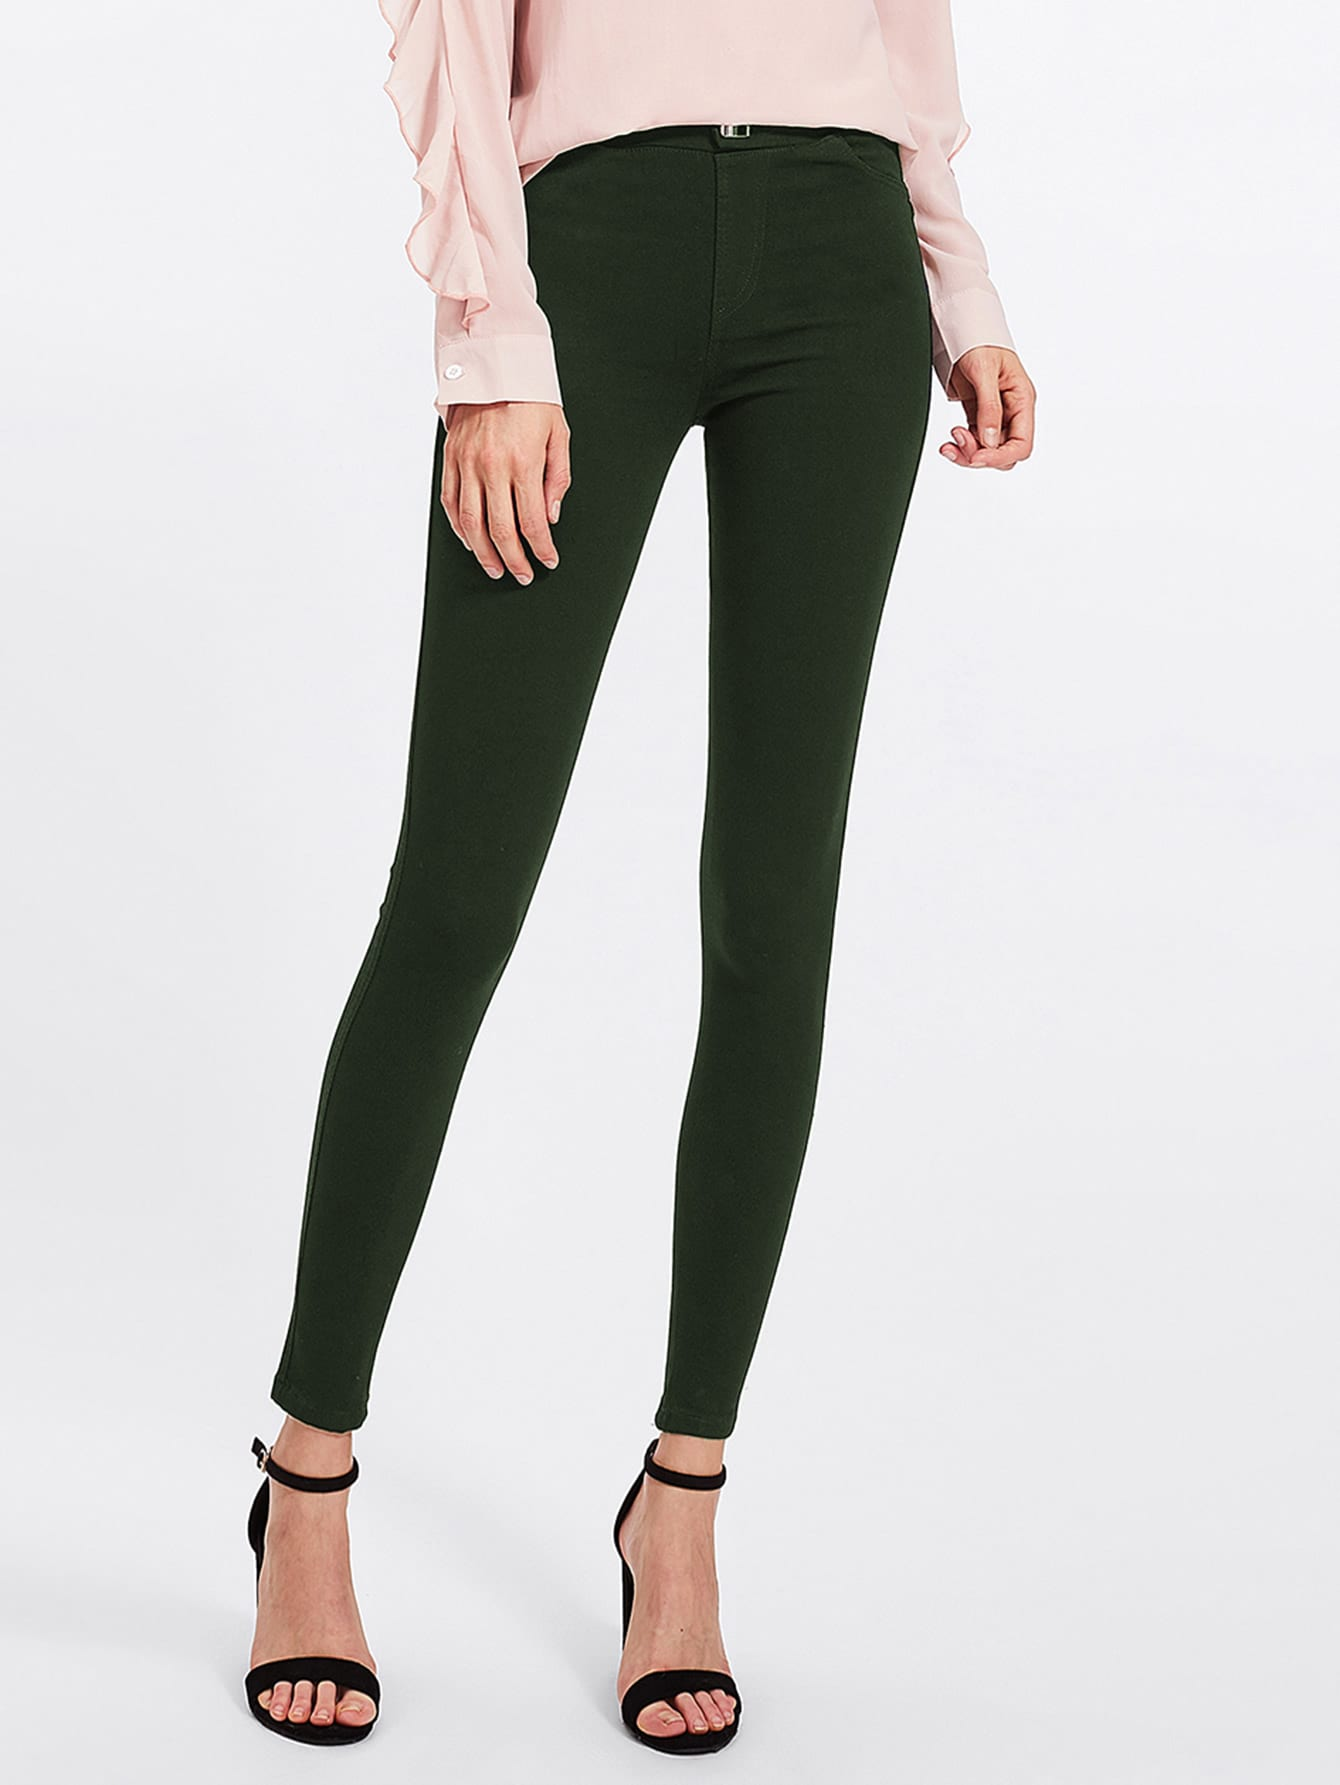 Army Green Skinny Jeans army green rivet